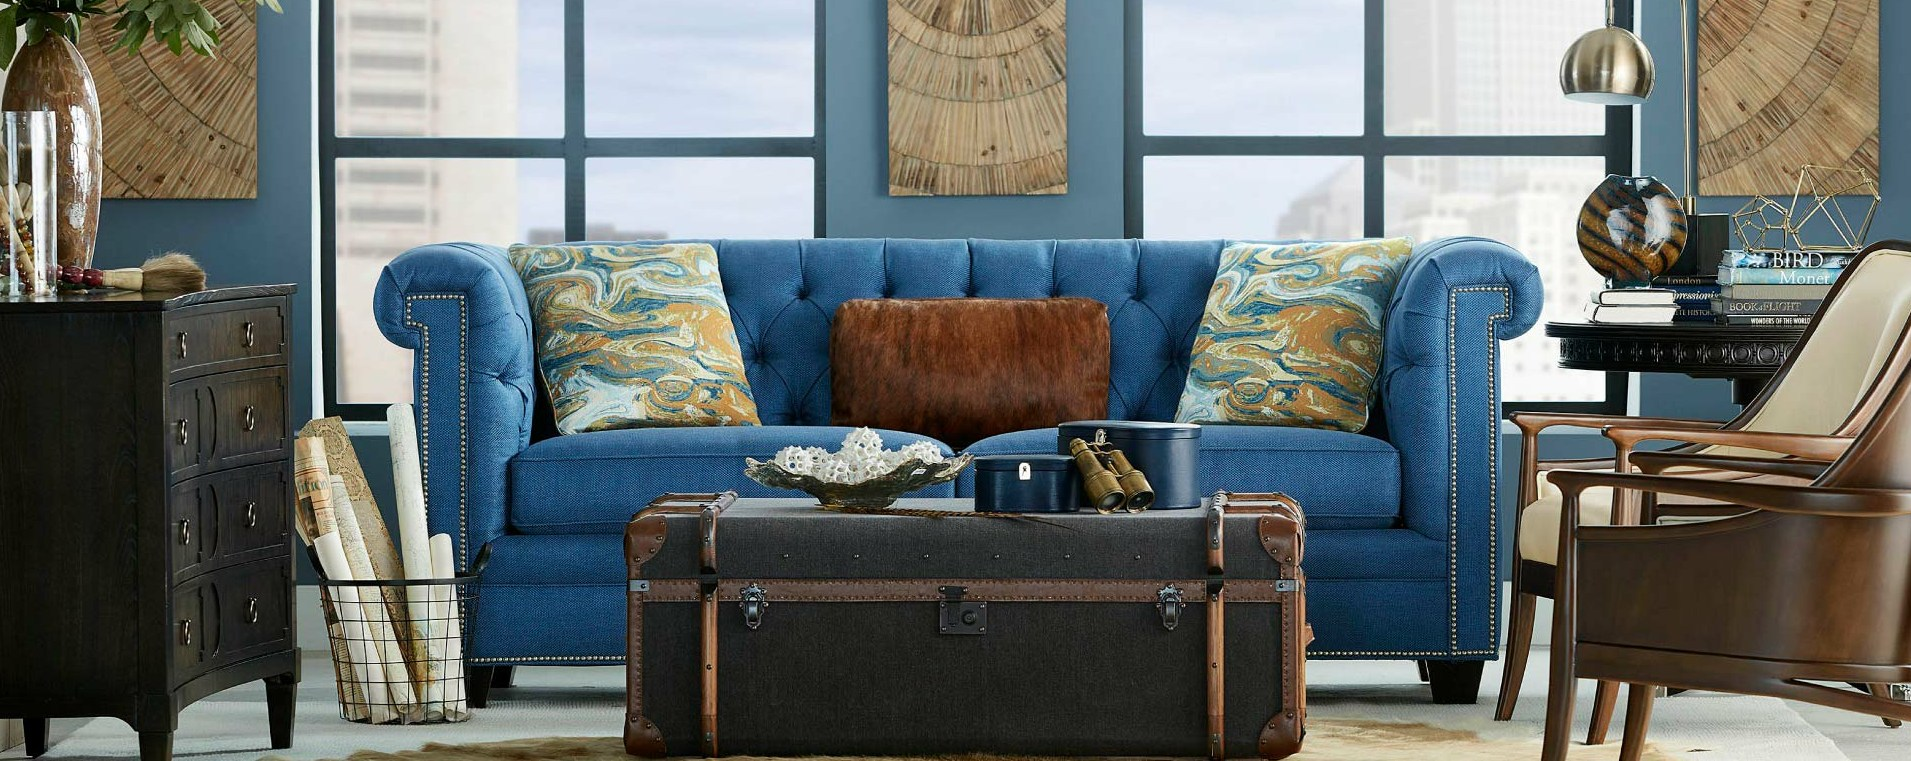 DirectPlus Discount Furniture in Indianapolis tufted blue sofa cropped